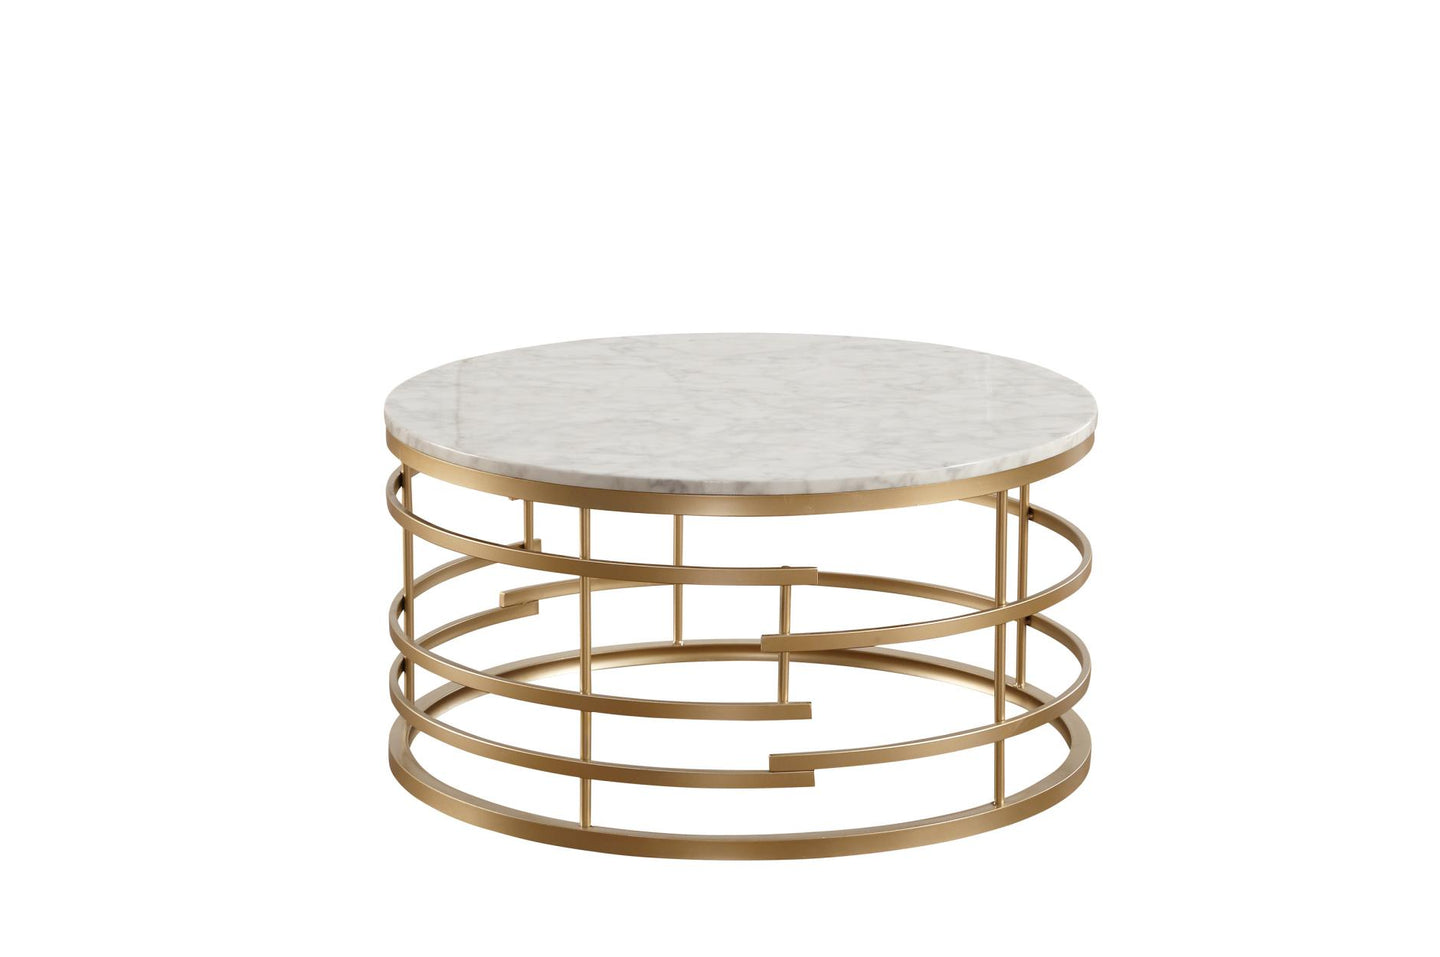 Homelegance Brassica Gold Marble Top Finish Coffee Table